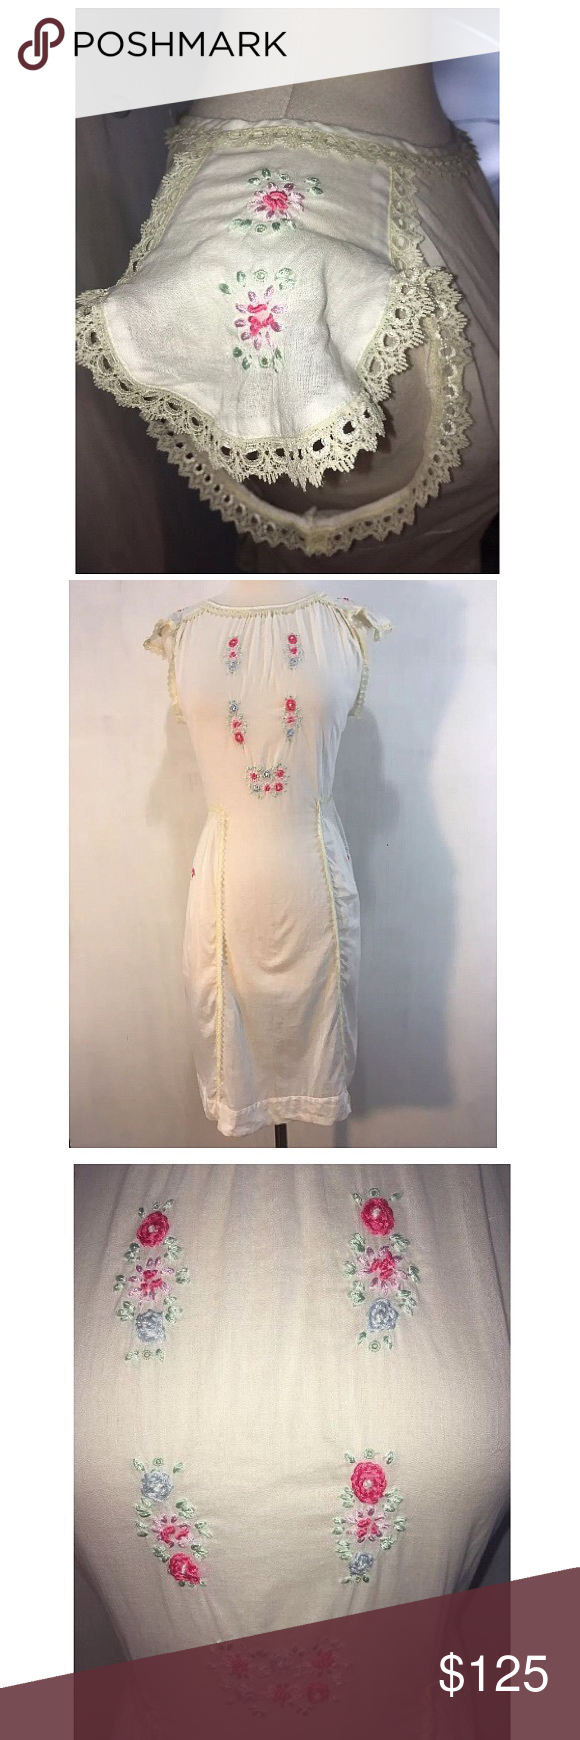 Gorgeous FREE PEOPLE dress ✨ Beautiful & hard to find crocheted detail Free People Dress - No imperfections - Can't find anywhere ⚜️ Size XS Free People Dresses